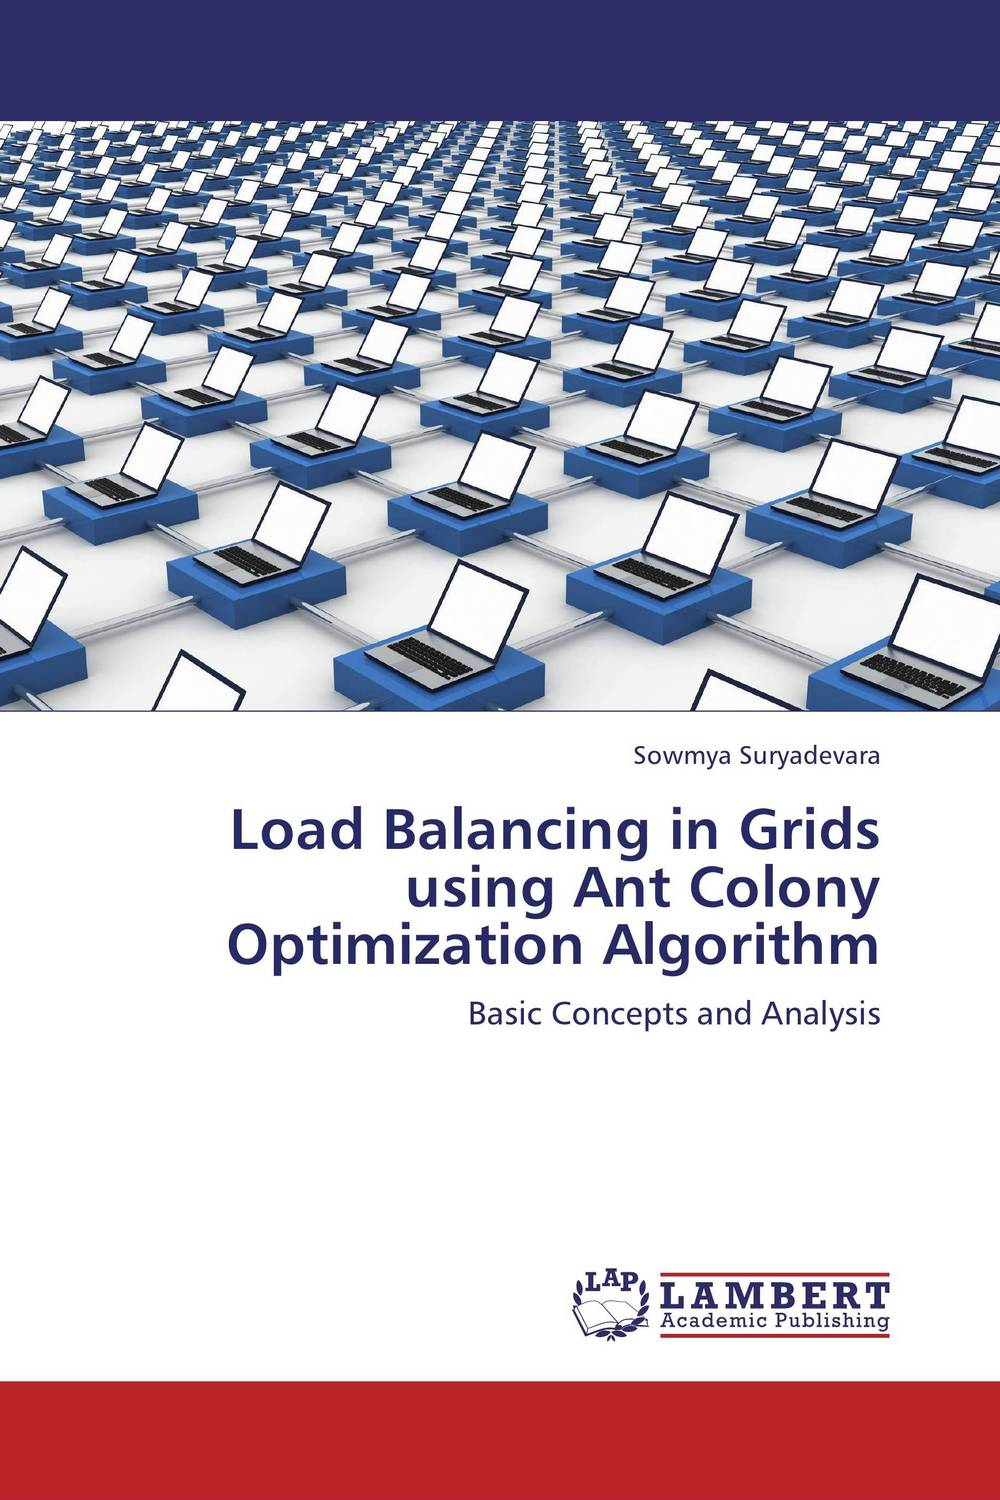 Load Balancing in Grids using Ant Colony Optimization Algorithm android для разработчиков 3 е издание